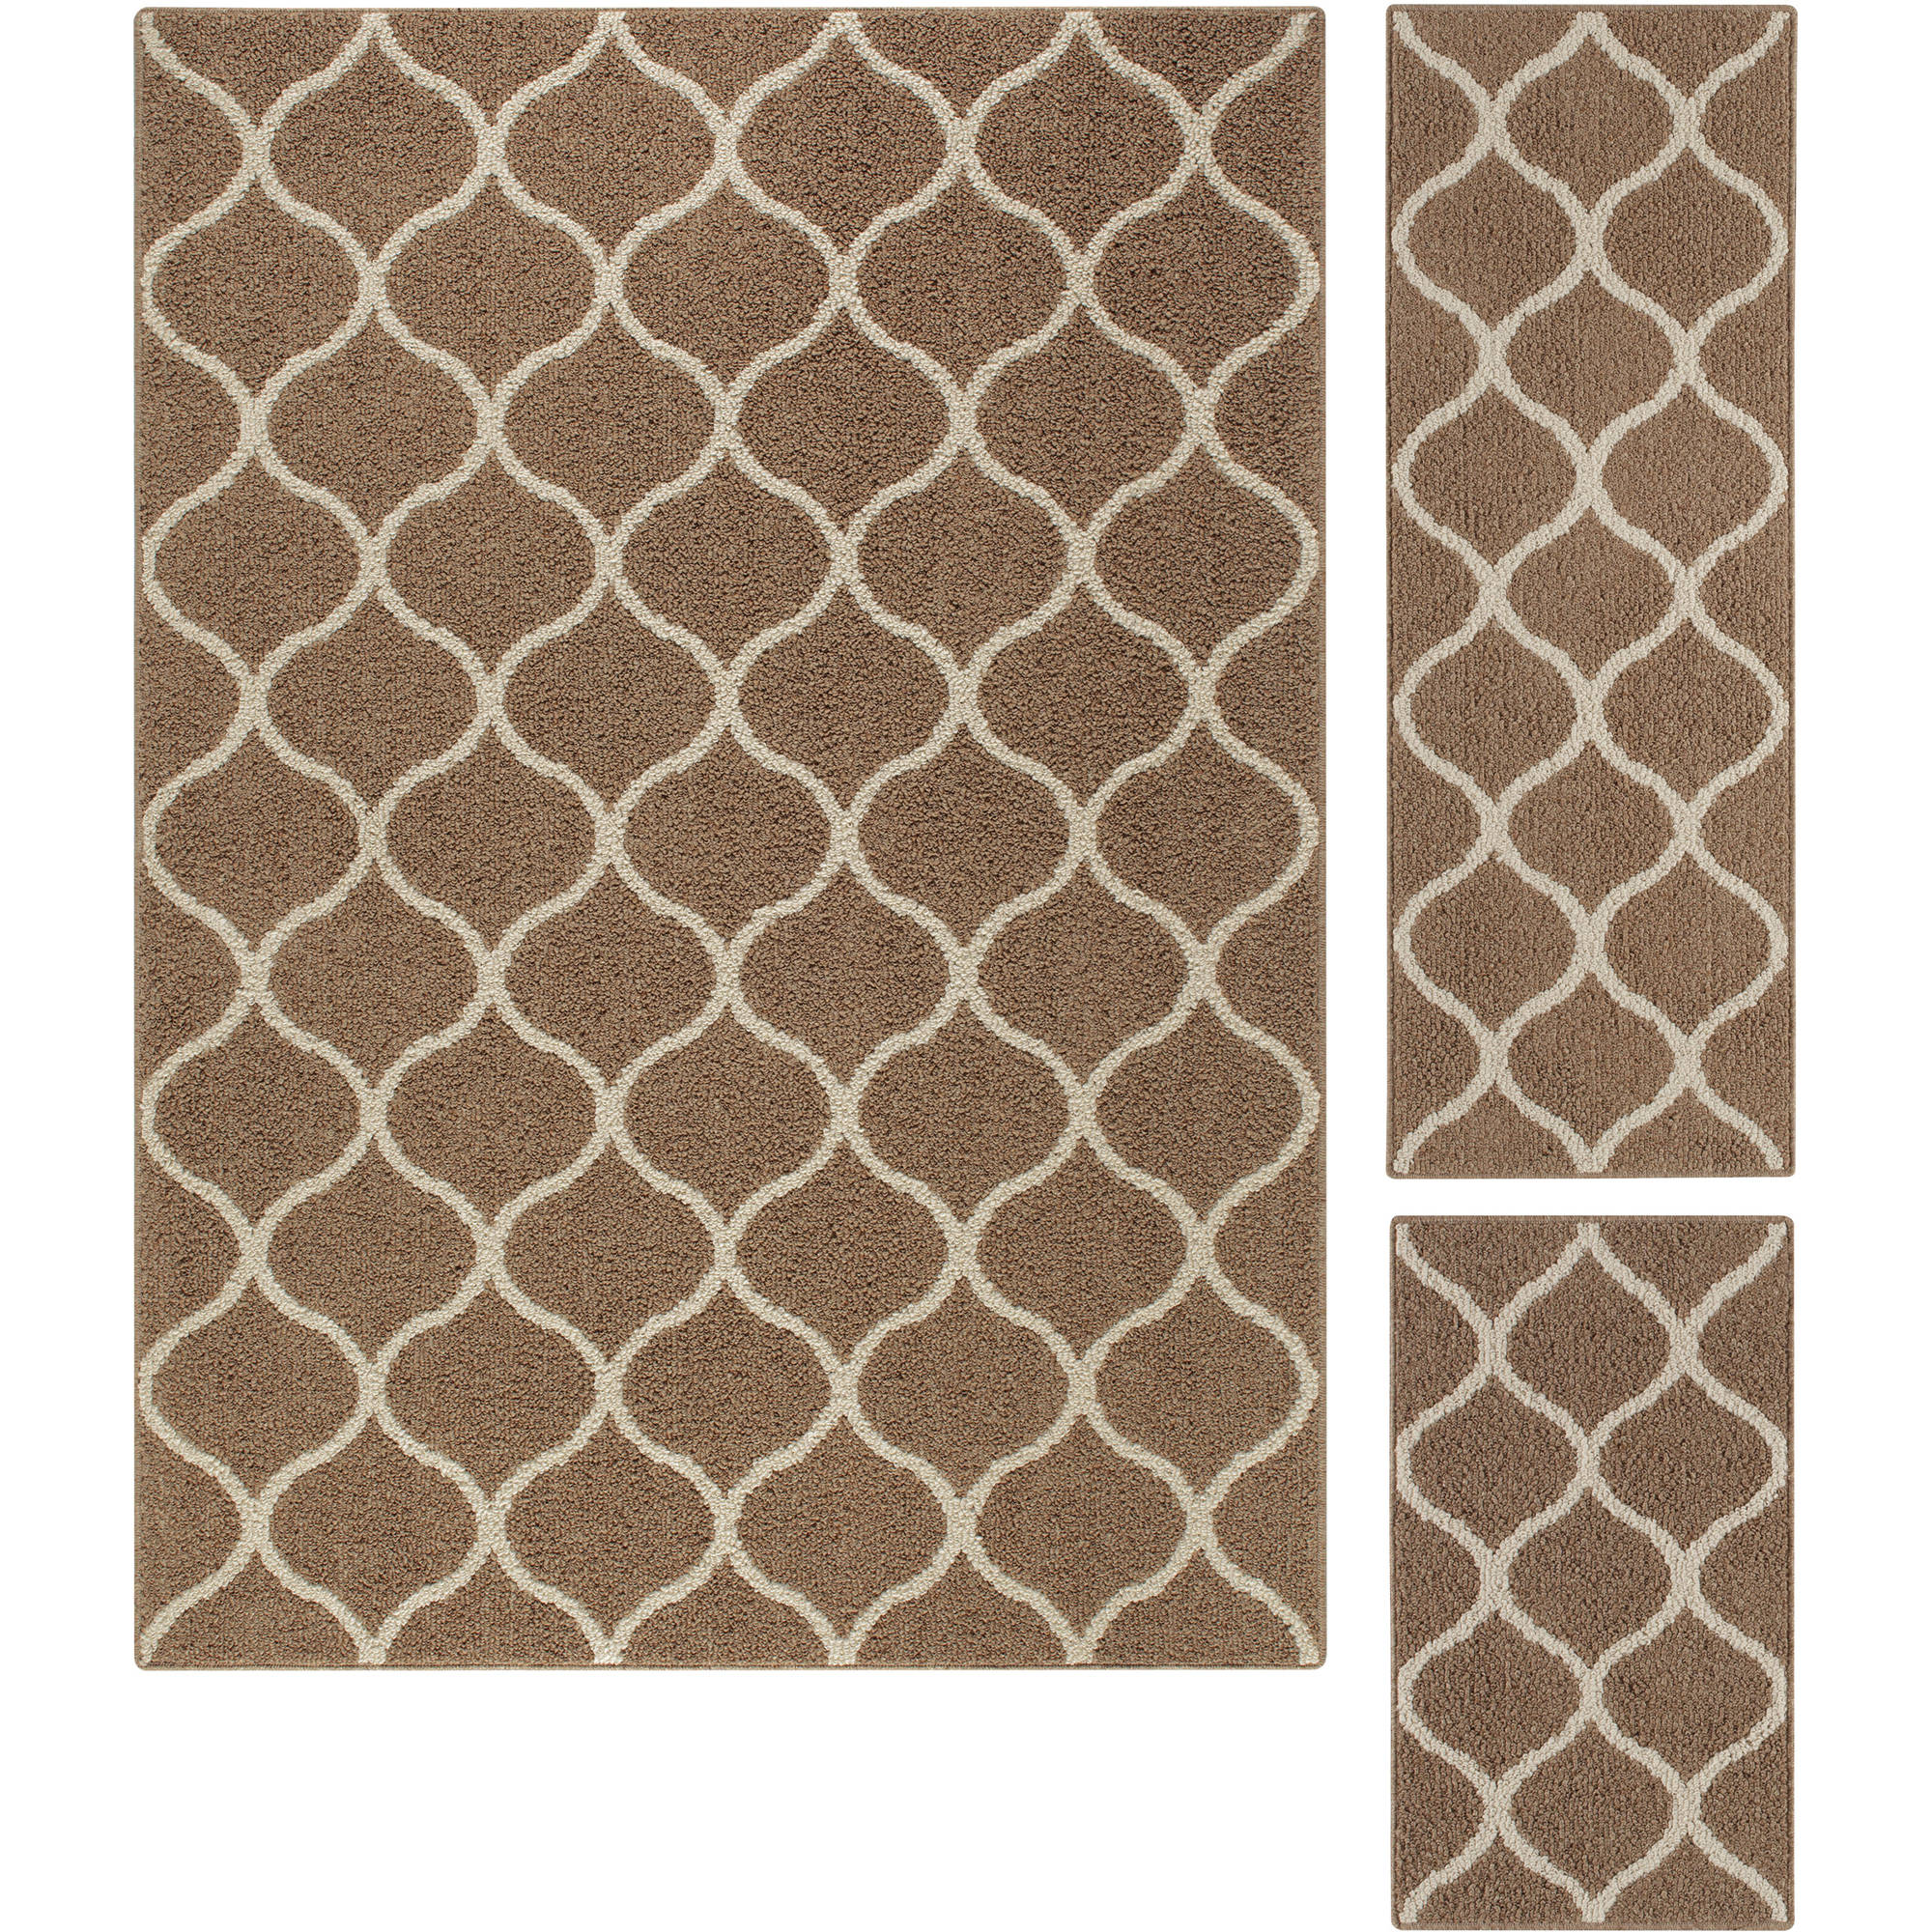 Mainstays Sheridan 3-Piece Area Rug Set